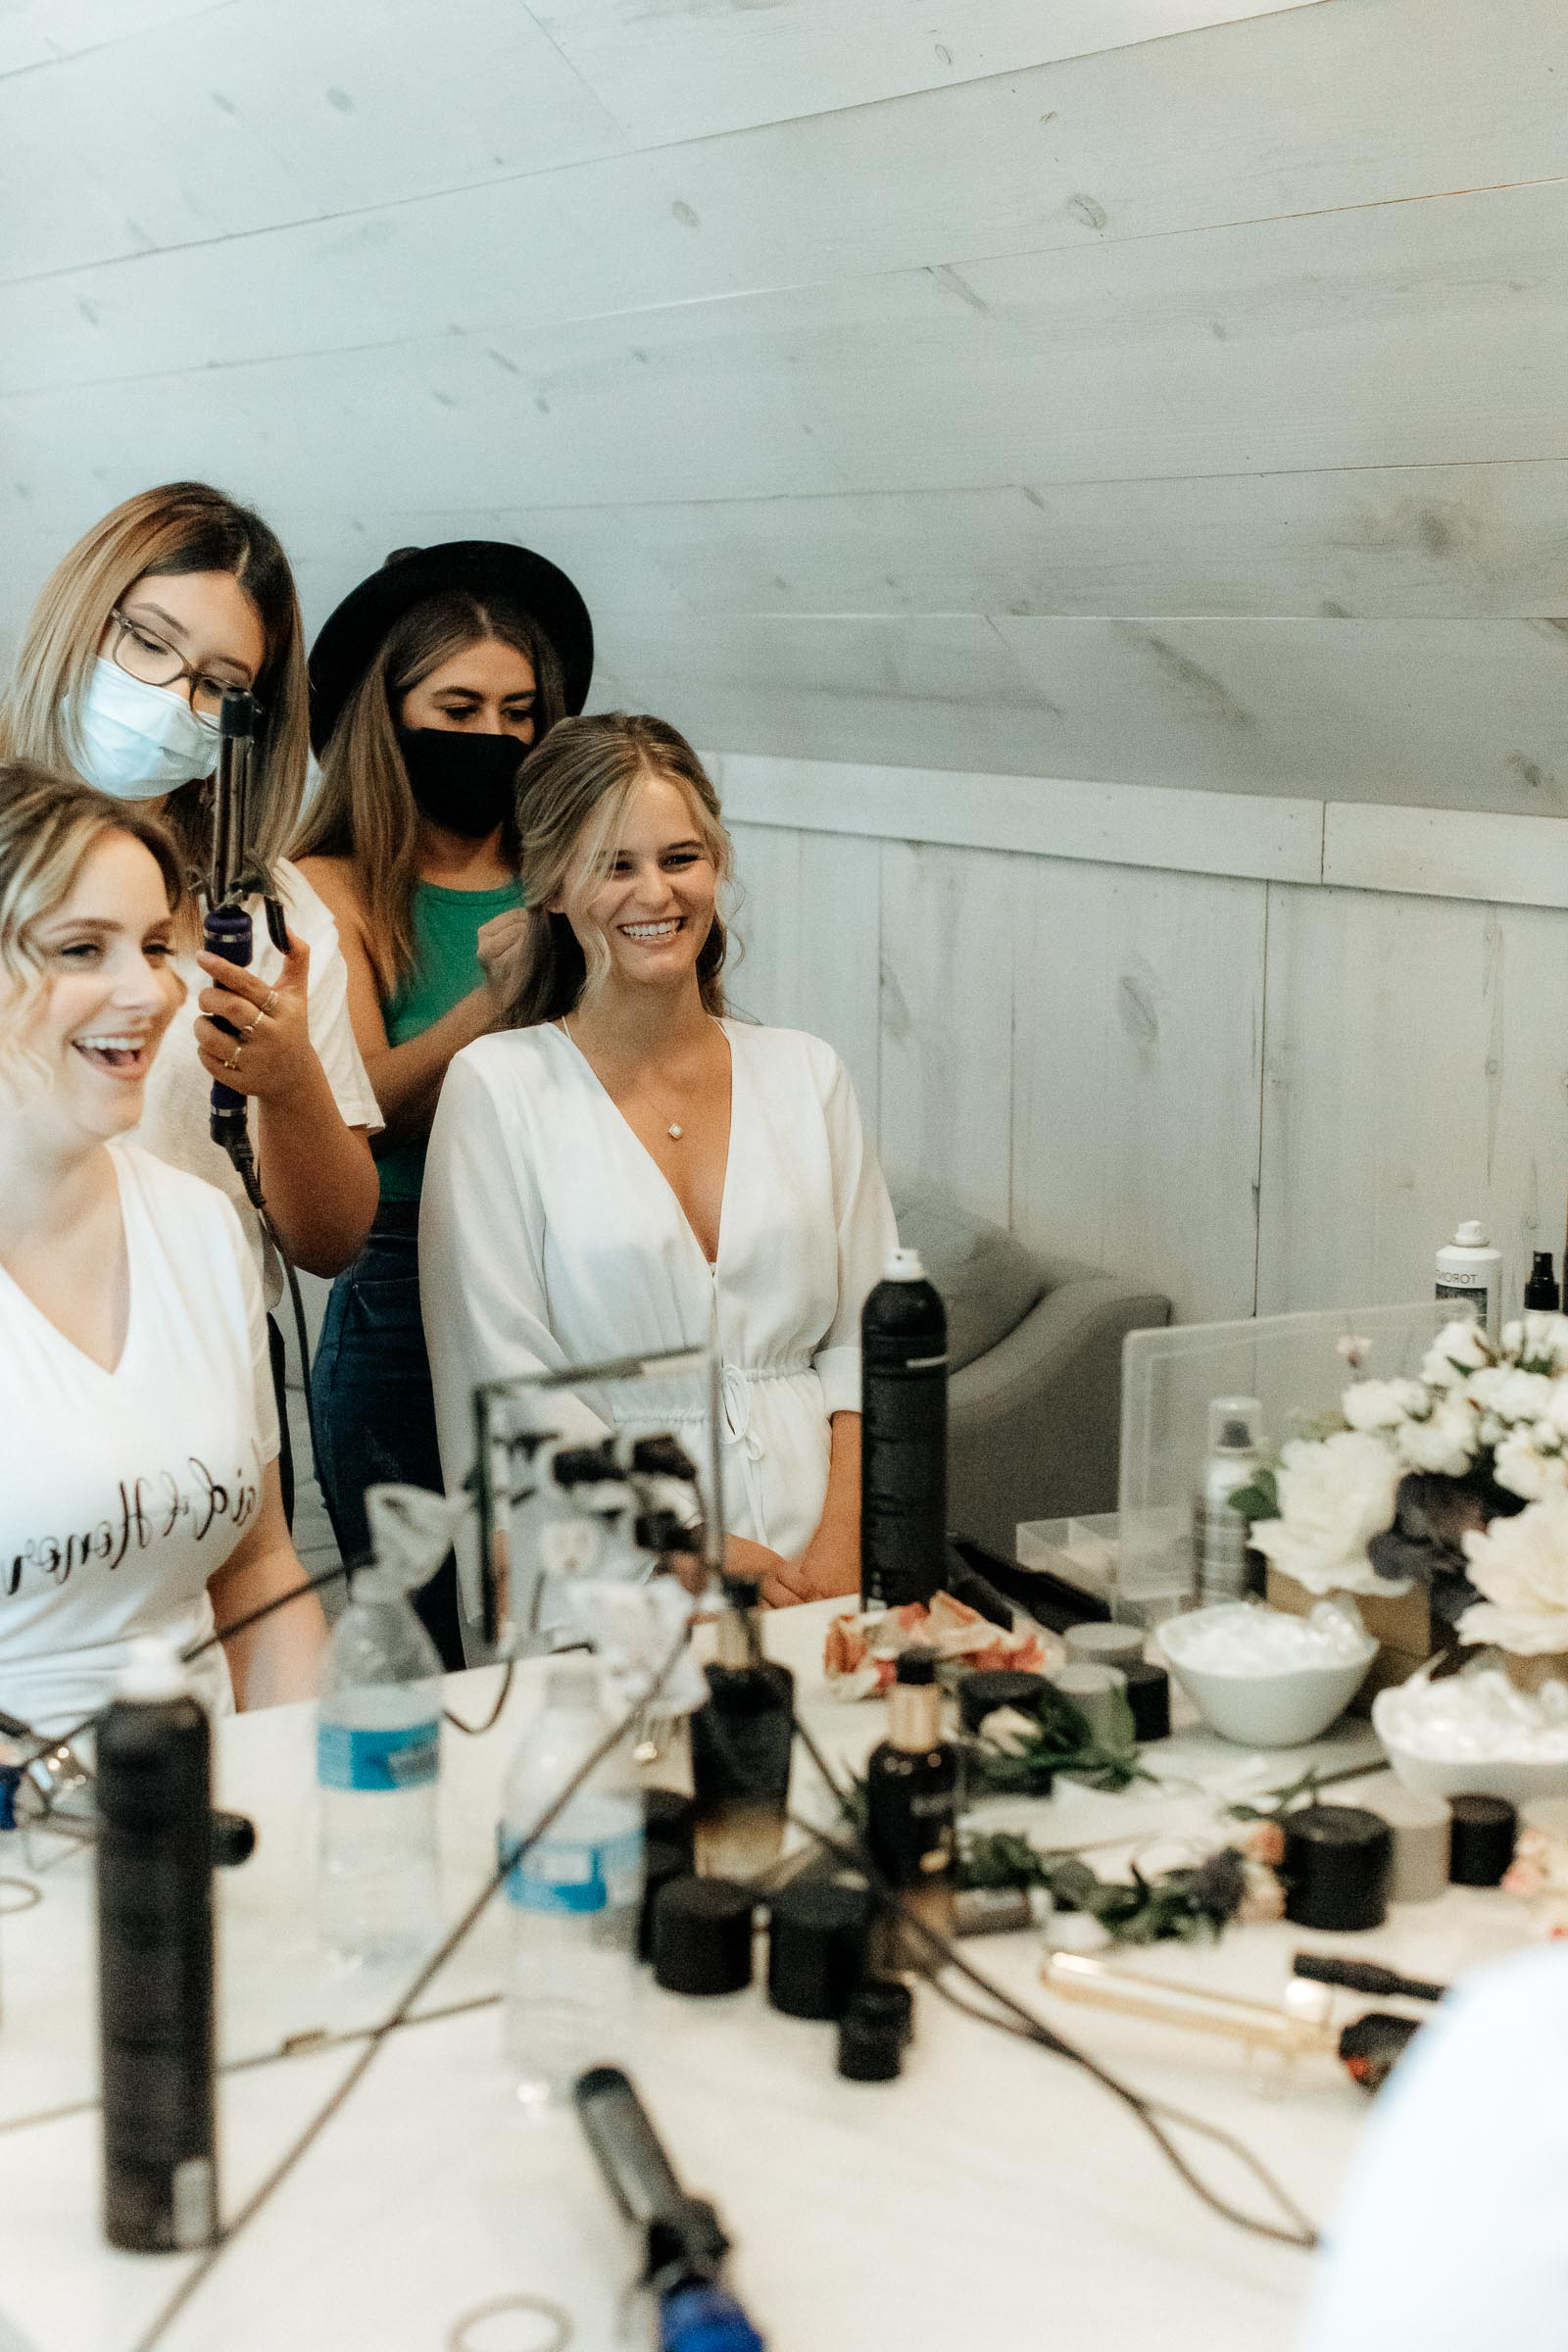 bride laughing with bridal party as they get ready for wedding day